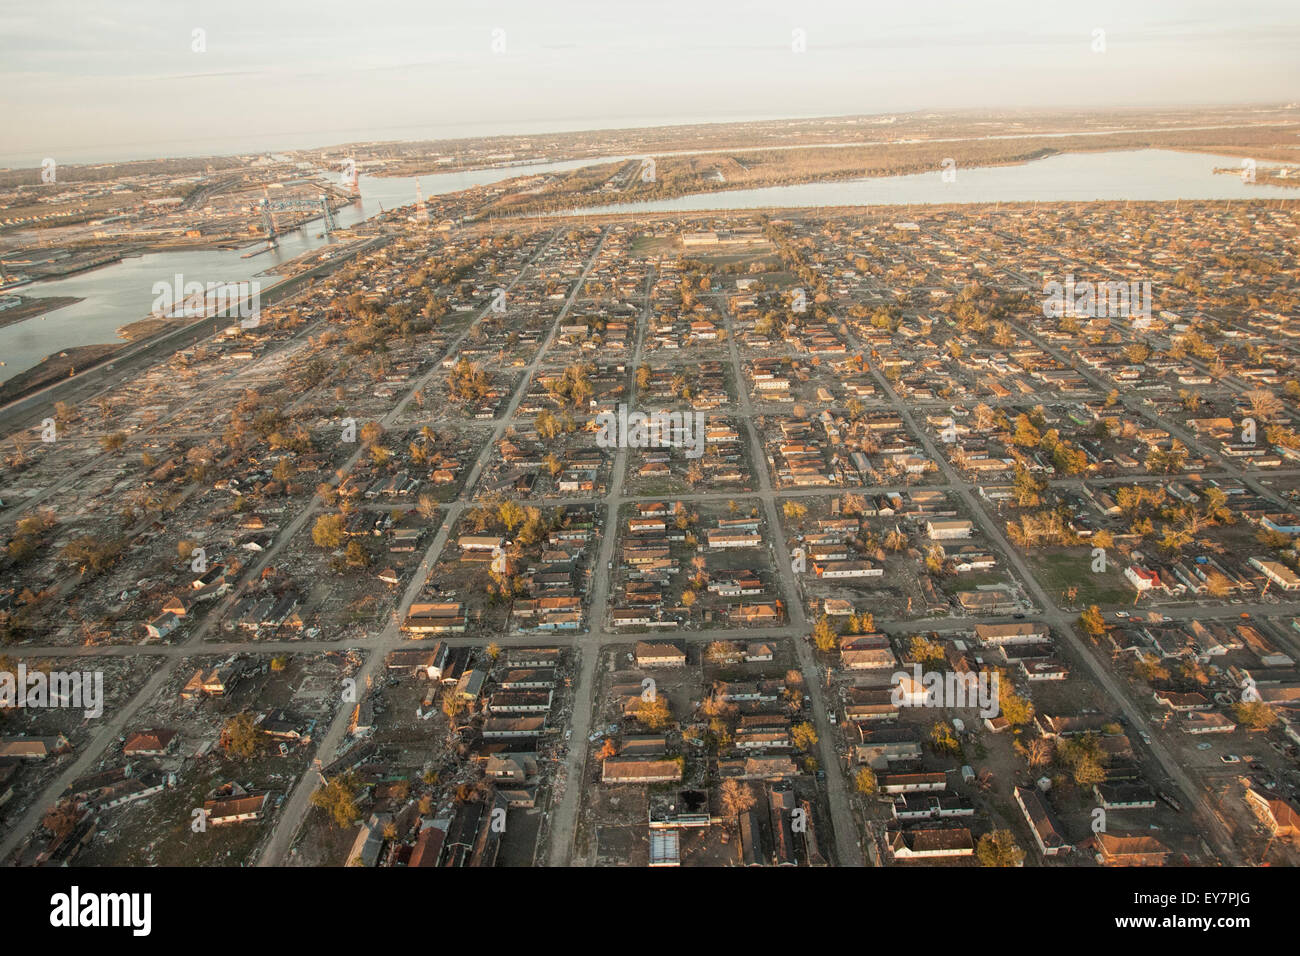 Aerial view of aftermath of Hurricane Katrina in New Orleans' Lower 9th Ward. Stock Photo